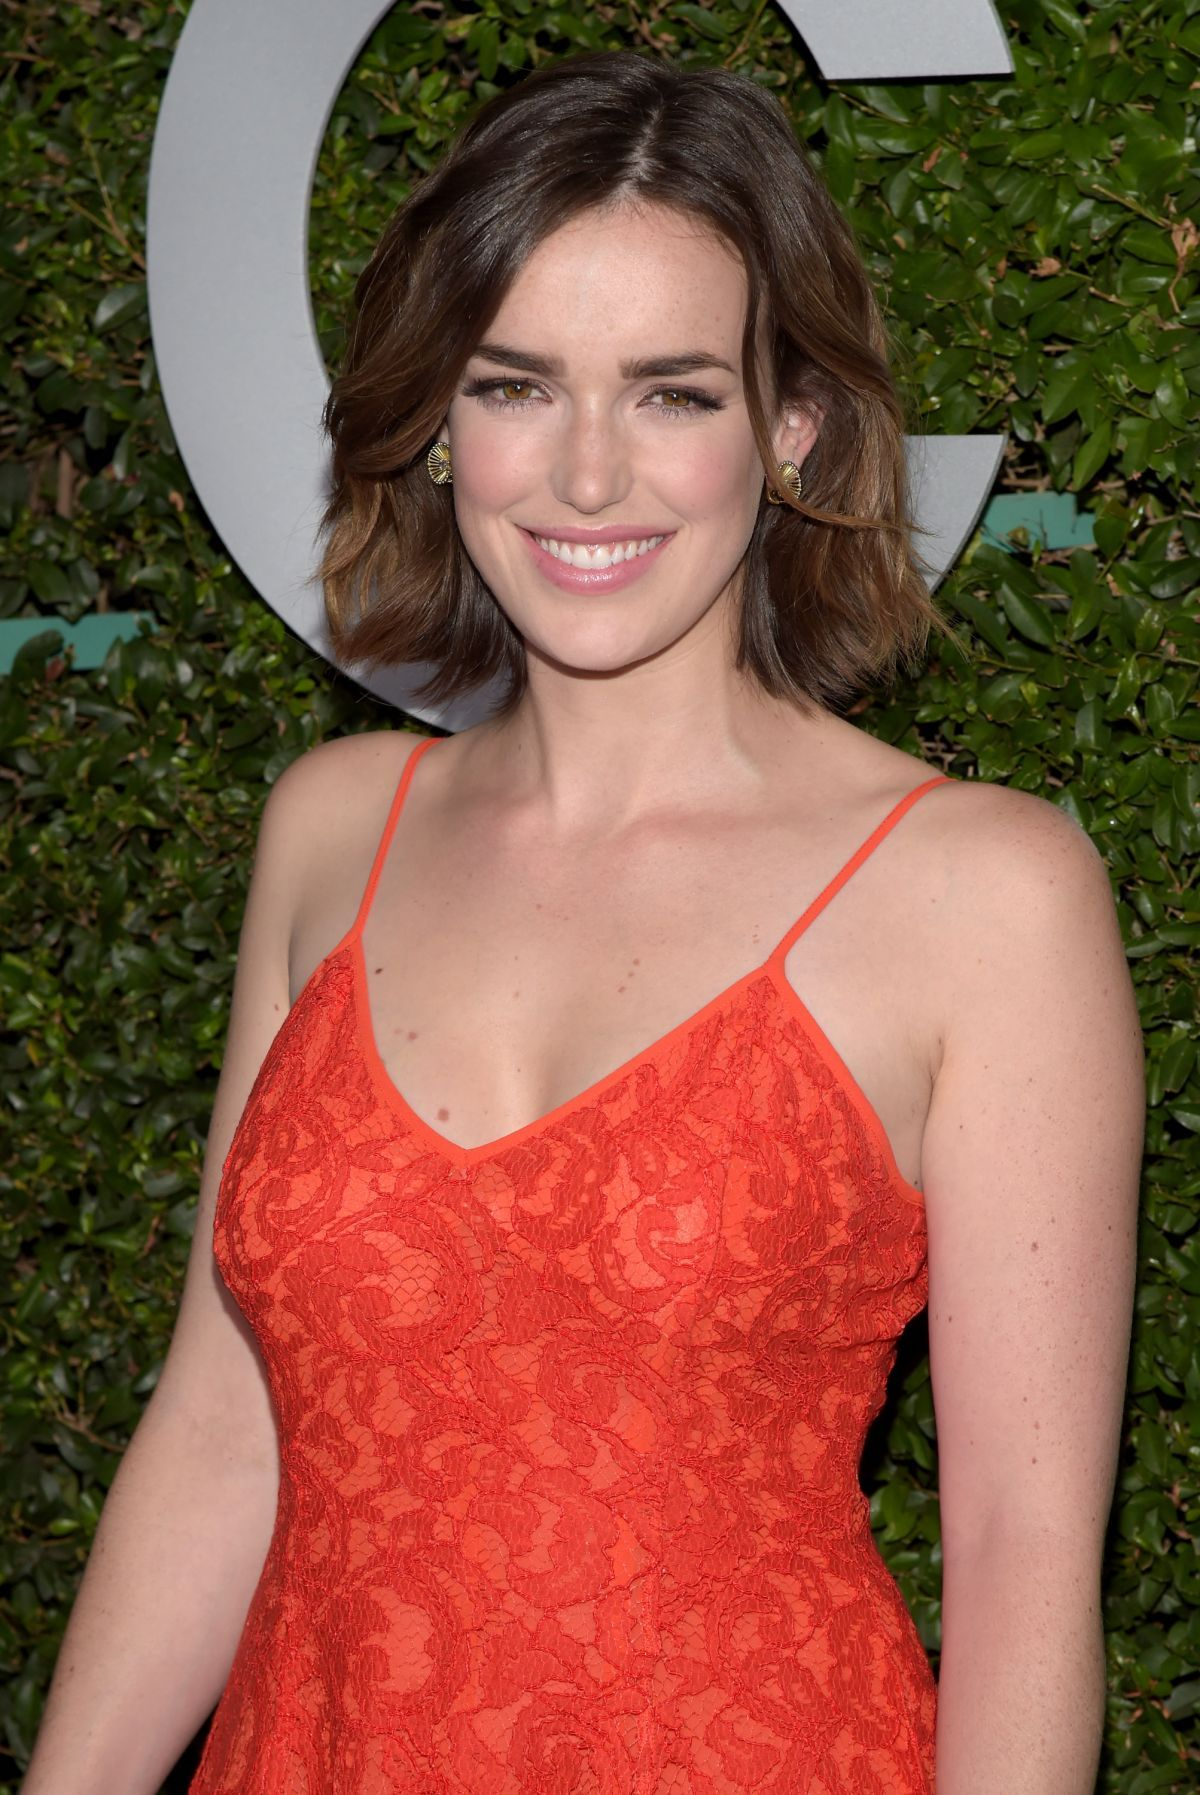 elizabeth henstridge siteelizabeth henstridge gif, elizabeth henstridge photoshoot, elizabeth henstridge tumblr, elizabeth henstridge listal, elizabeth henstridge site, elizabeth henstridge fan, elizabeth henstridge fansite, elizabeth henstridge gallery, elizabeth henstridge movie list, elizabeth henstridge danielle panabaker, elizabeth henstridge looks like, elizabeth henstridge hollyoaks, elizabeth henstridge instagram, elizabeth henstridge photo gallery, elizabeth henstridge twitter, elizabeth henstridge boyfriend, elizabeth henstridge wiki, elizabeth henstridge and zachary abel